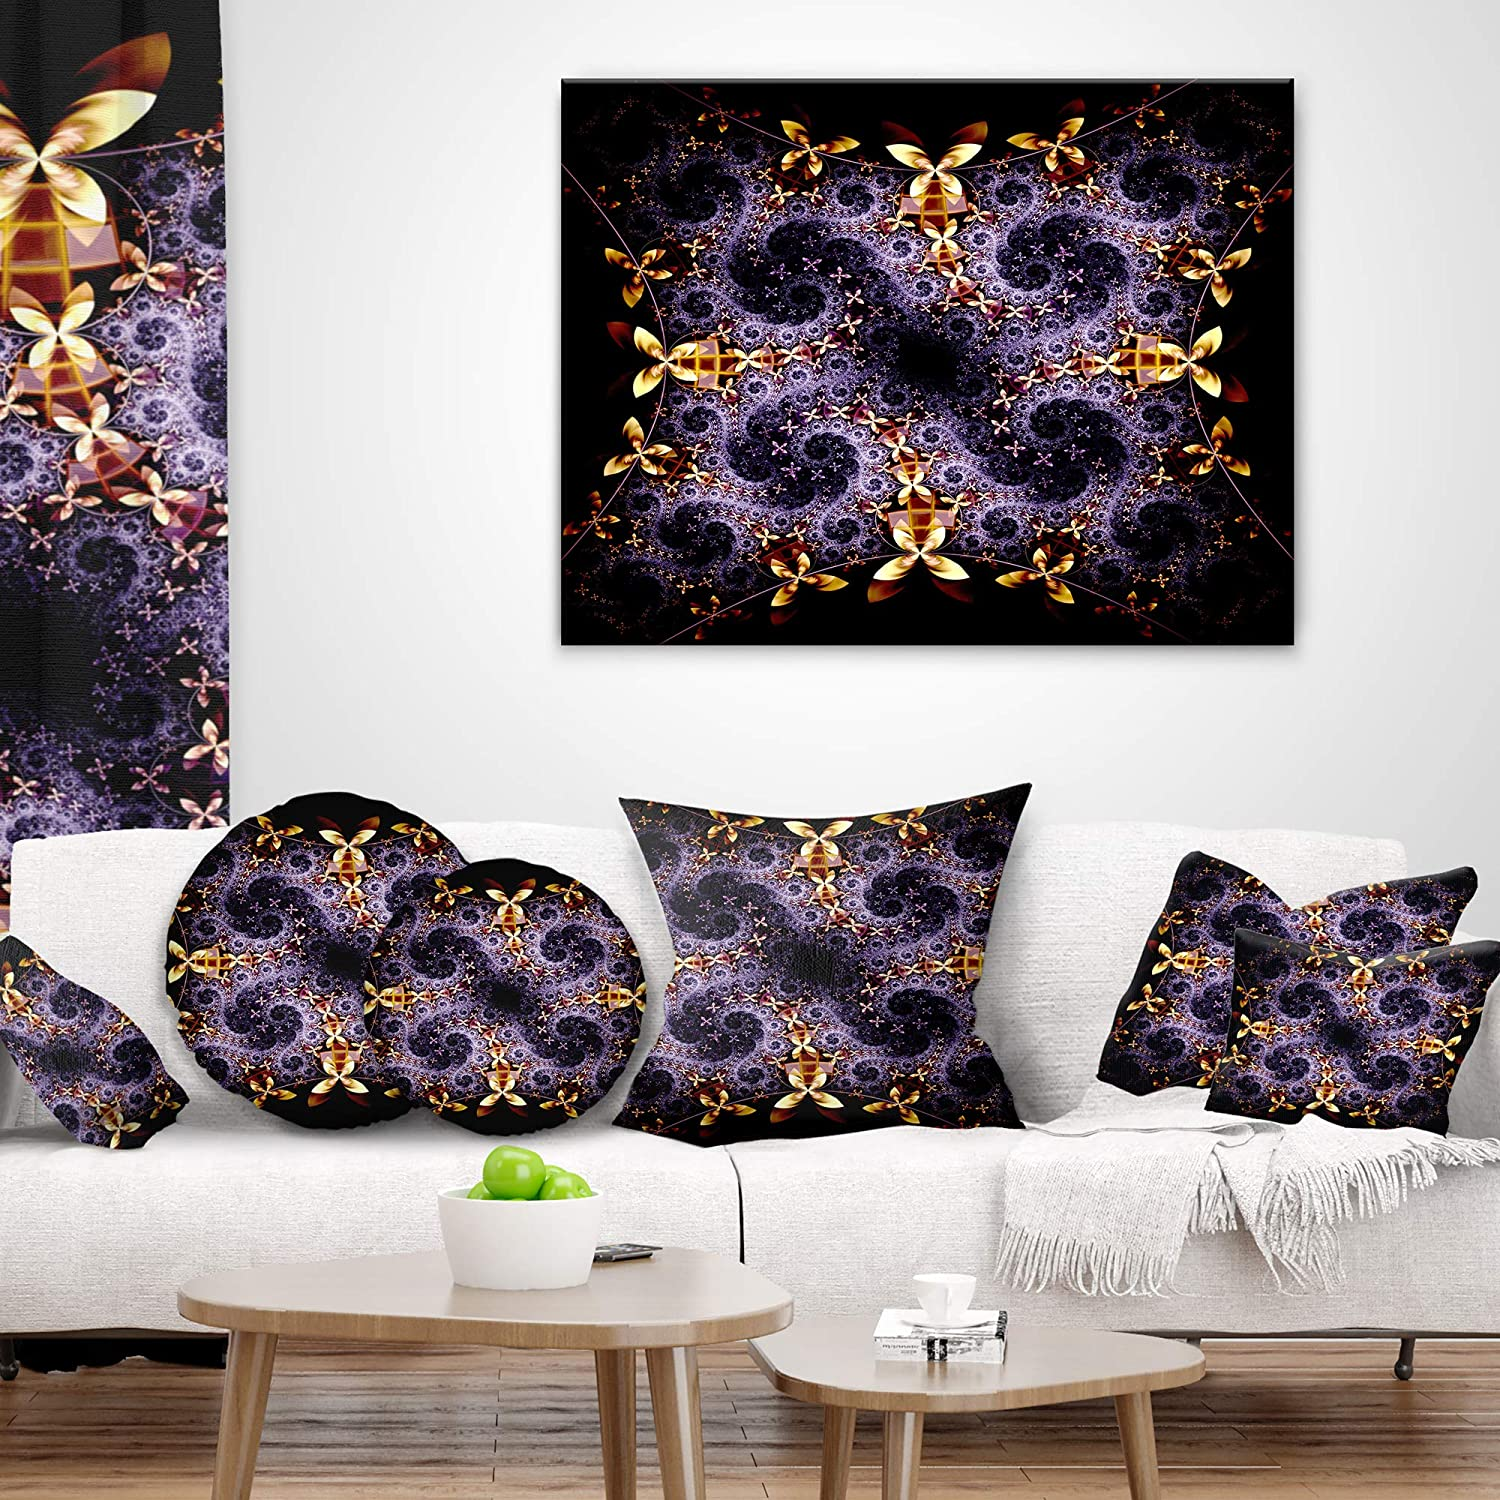 18 x 18 Sofa Throw Pillow Insert Printed Designart CU16458-18-18 Yellow and Violet Fractal Flower Abstract Cushion Cover for Living Room